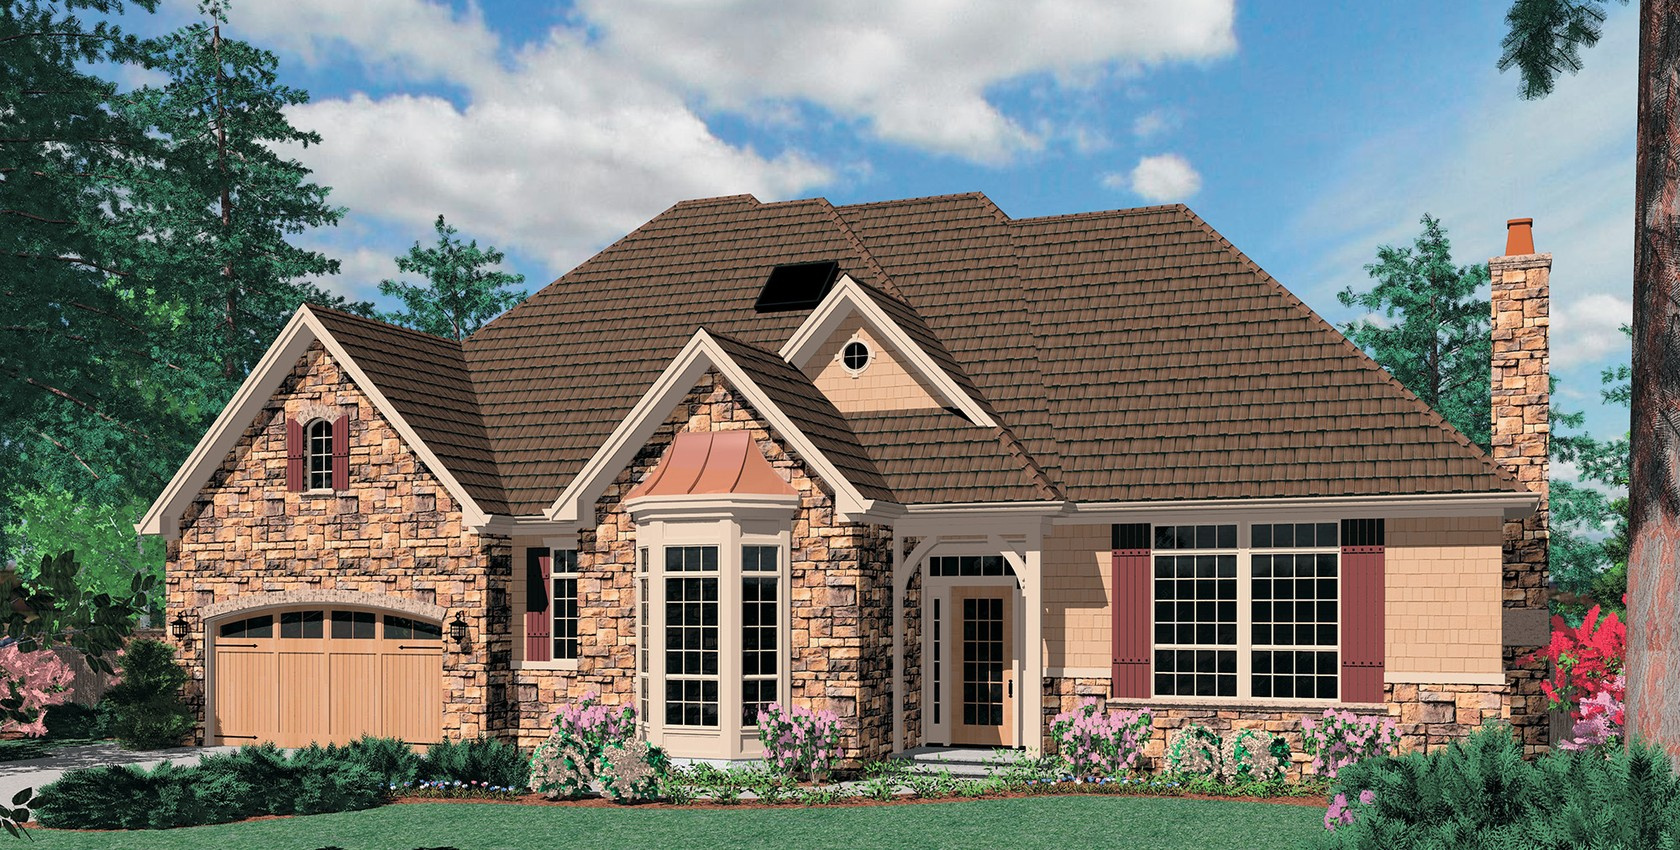 Mascord house plan 1319a the jennings - Consider choosing great house plan ...